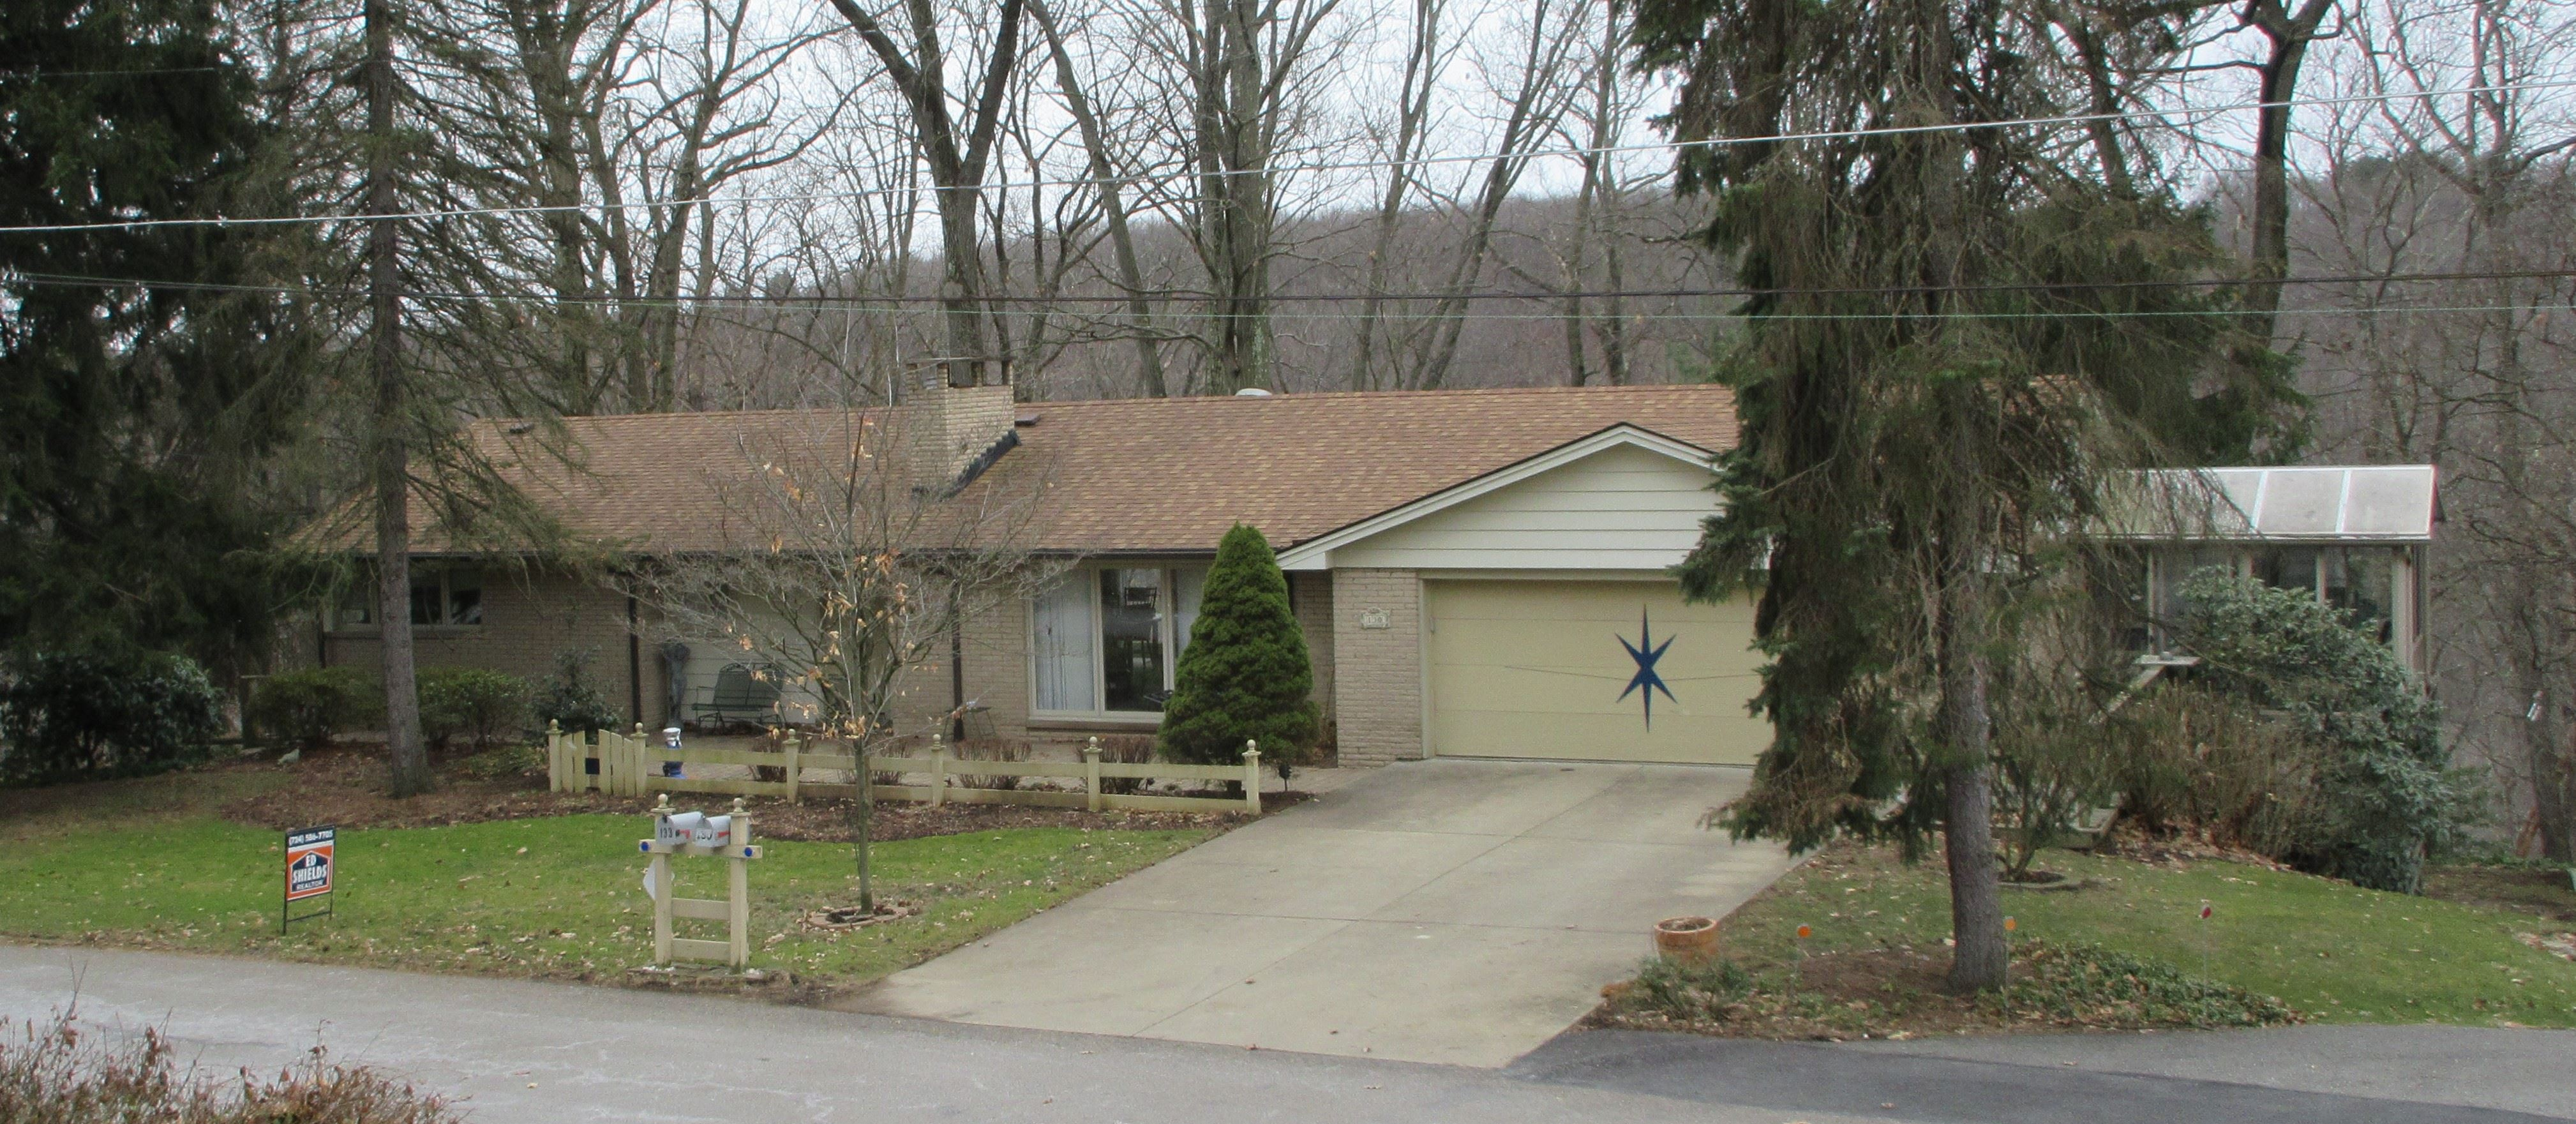 OPEN HOUSE - 130 Greenhill Drive, Butler Twp -   OPEN HOUSE Sunday, June 24th from 12- 3PM!  Spacious brick ranch loaded w...